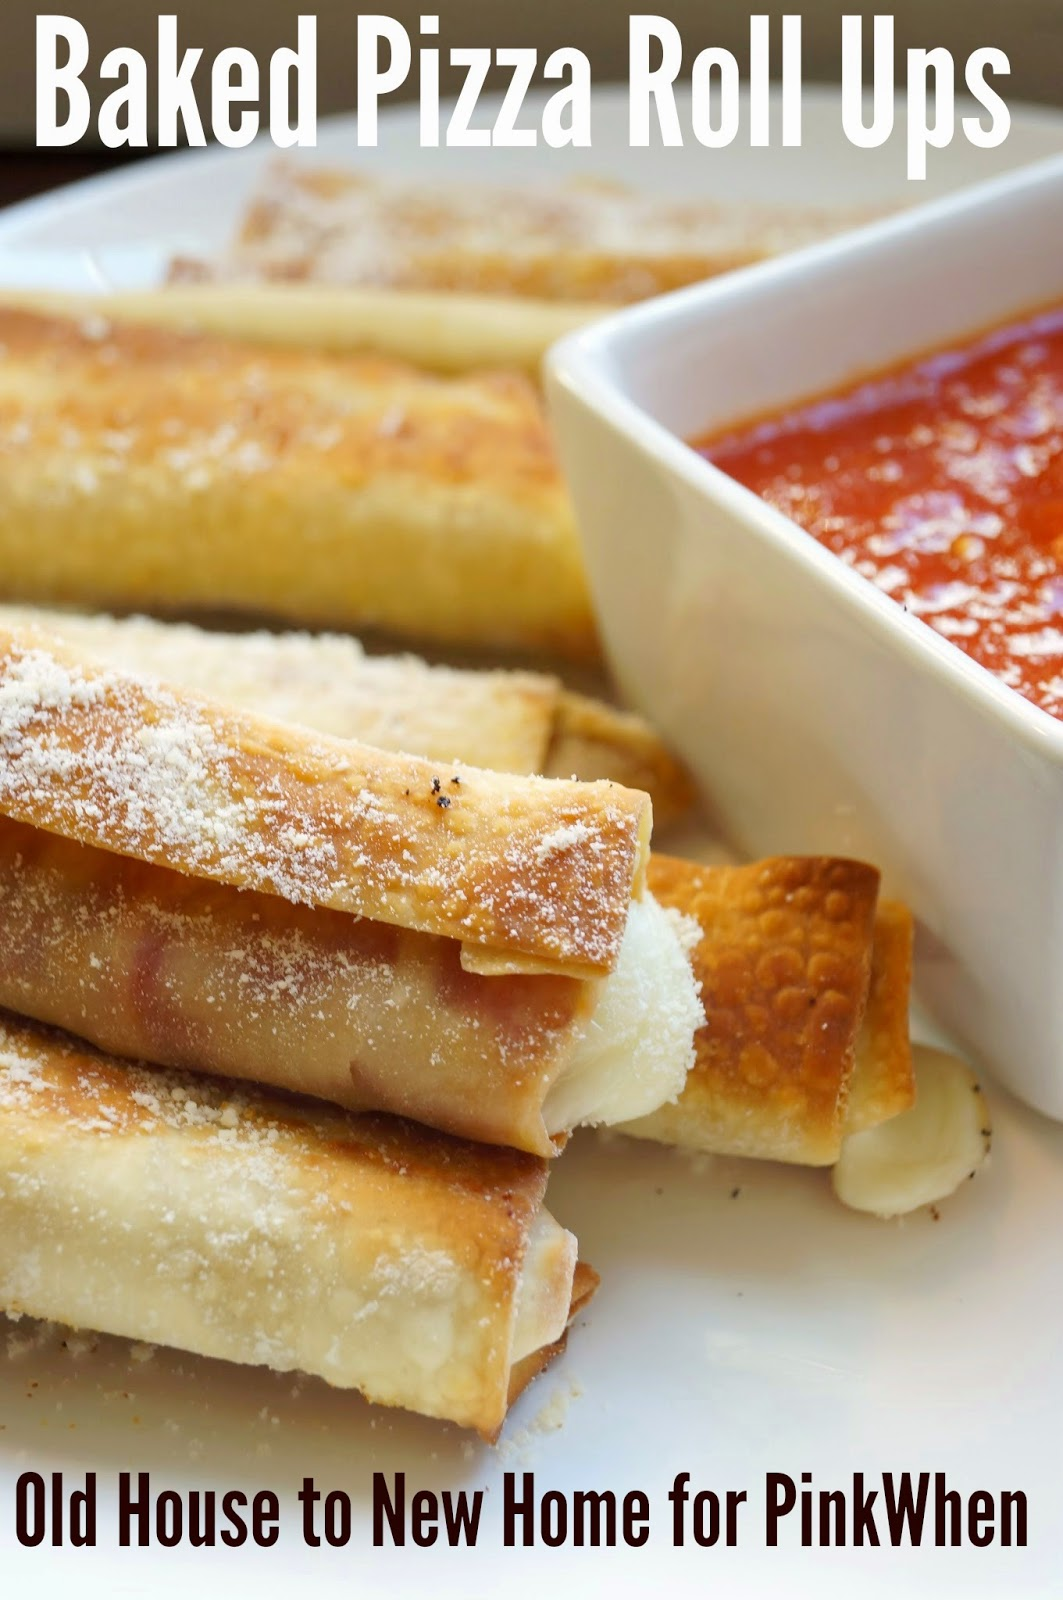 Baked Pizza Roll Ups with Mozzarella and Pepperoni!